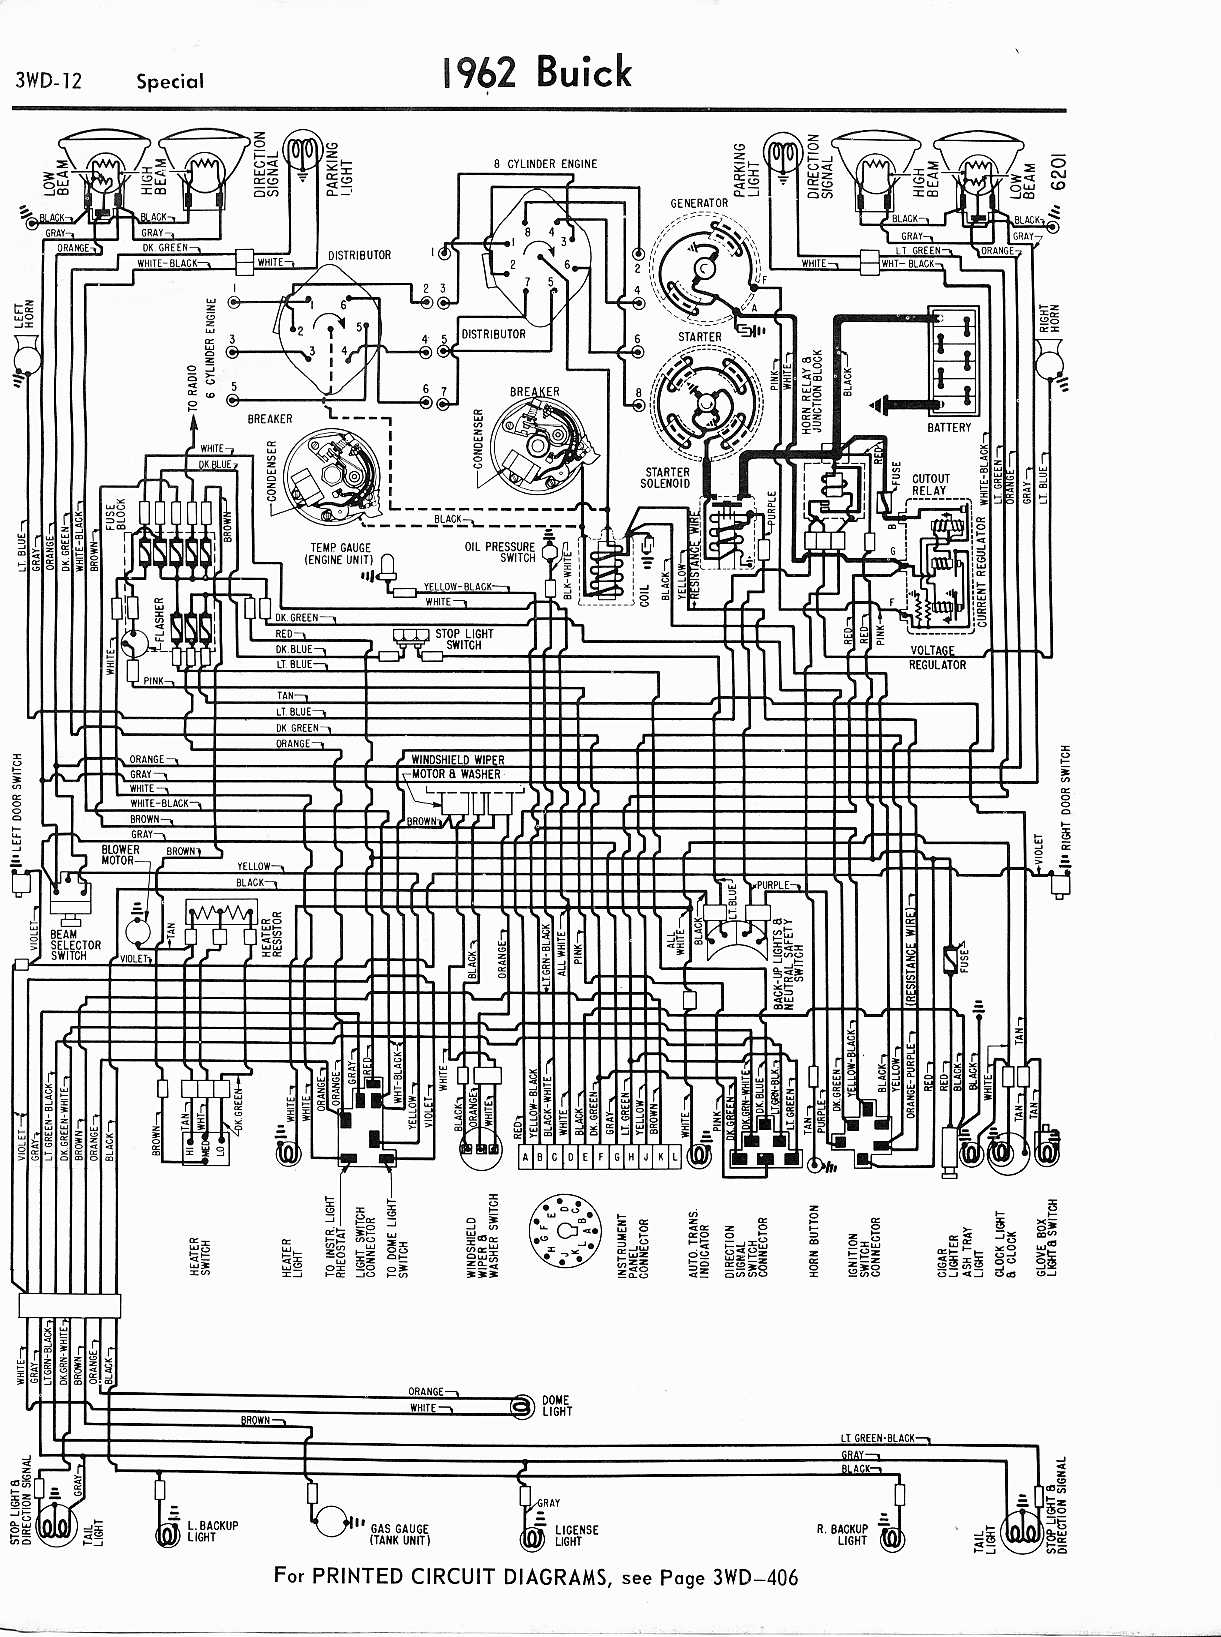 [SCHEMATICS_48DE]  829F 1966 Buick Wildcat Wiring Diagram | Wiring Resources | 1966 Buick Special Wiring Diagram |  | Wiring Resources